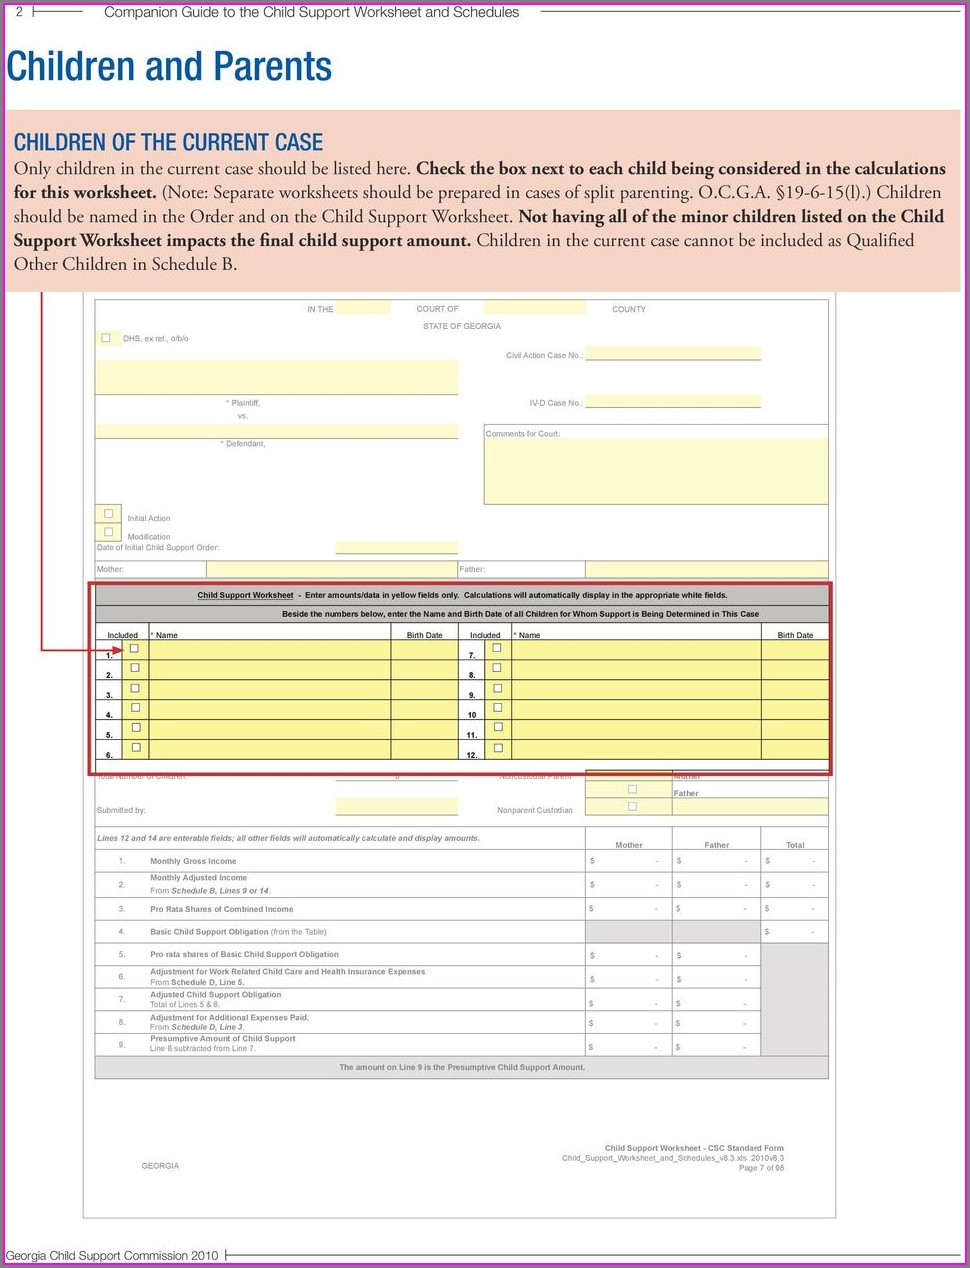 Child Support Worksheet Csc Data Entry Form